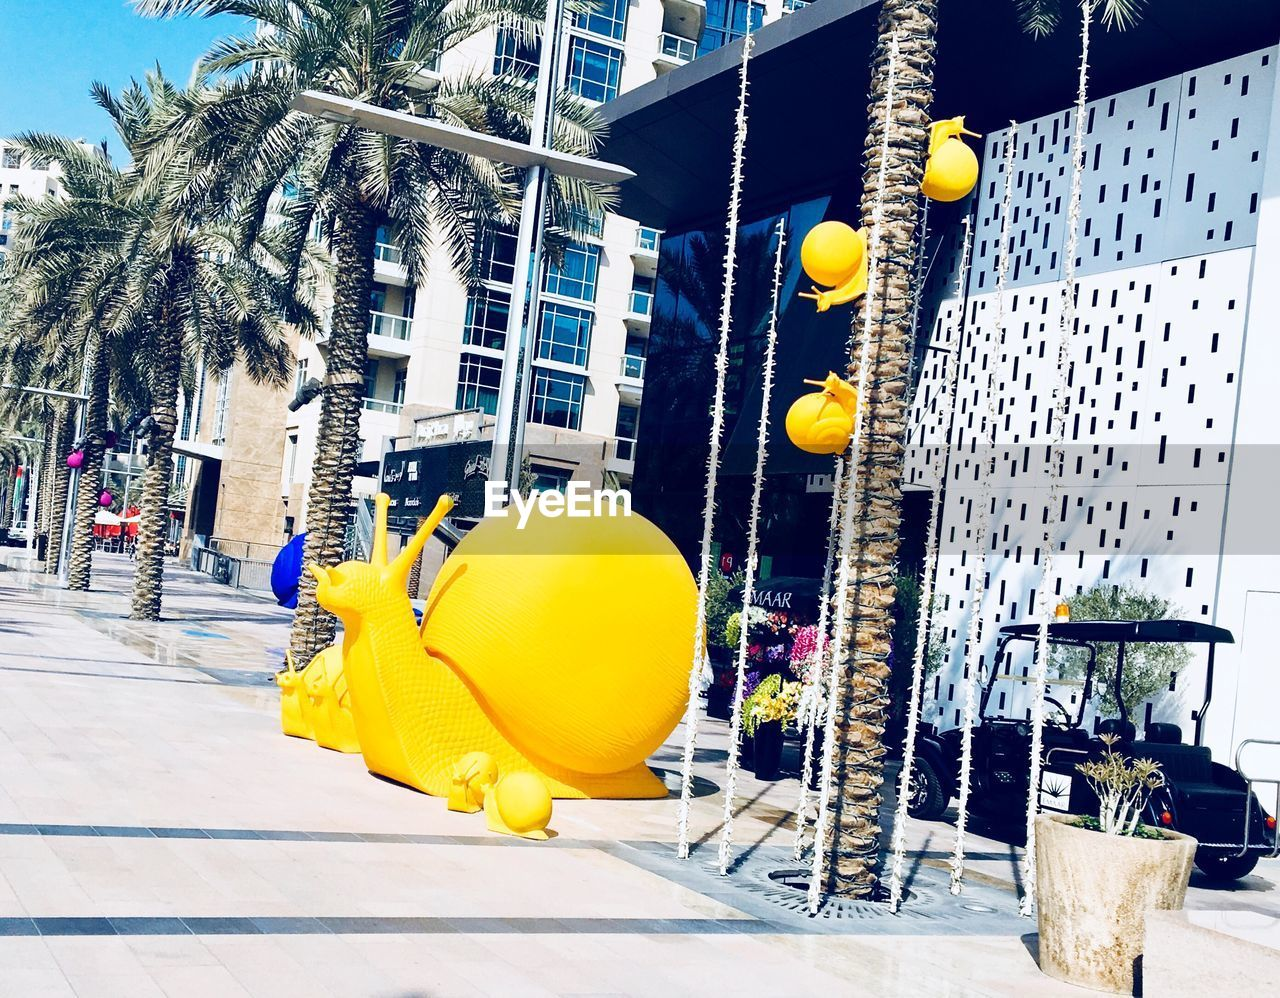 building exterior, balloon, yellow, tree, built structure, outdoors, architecture, palm tree, day, city, helium balloon, no people